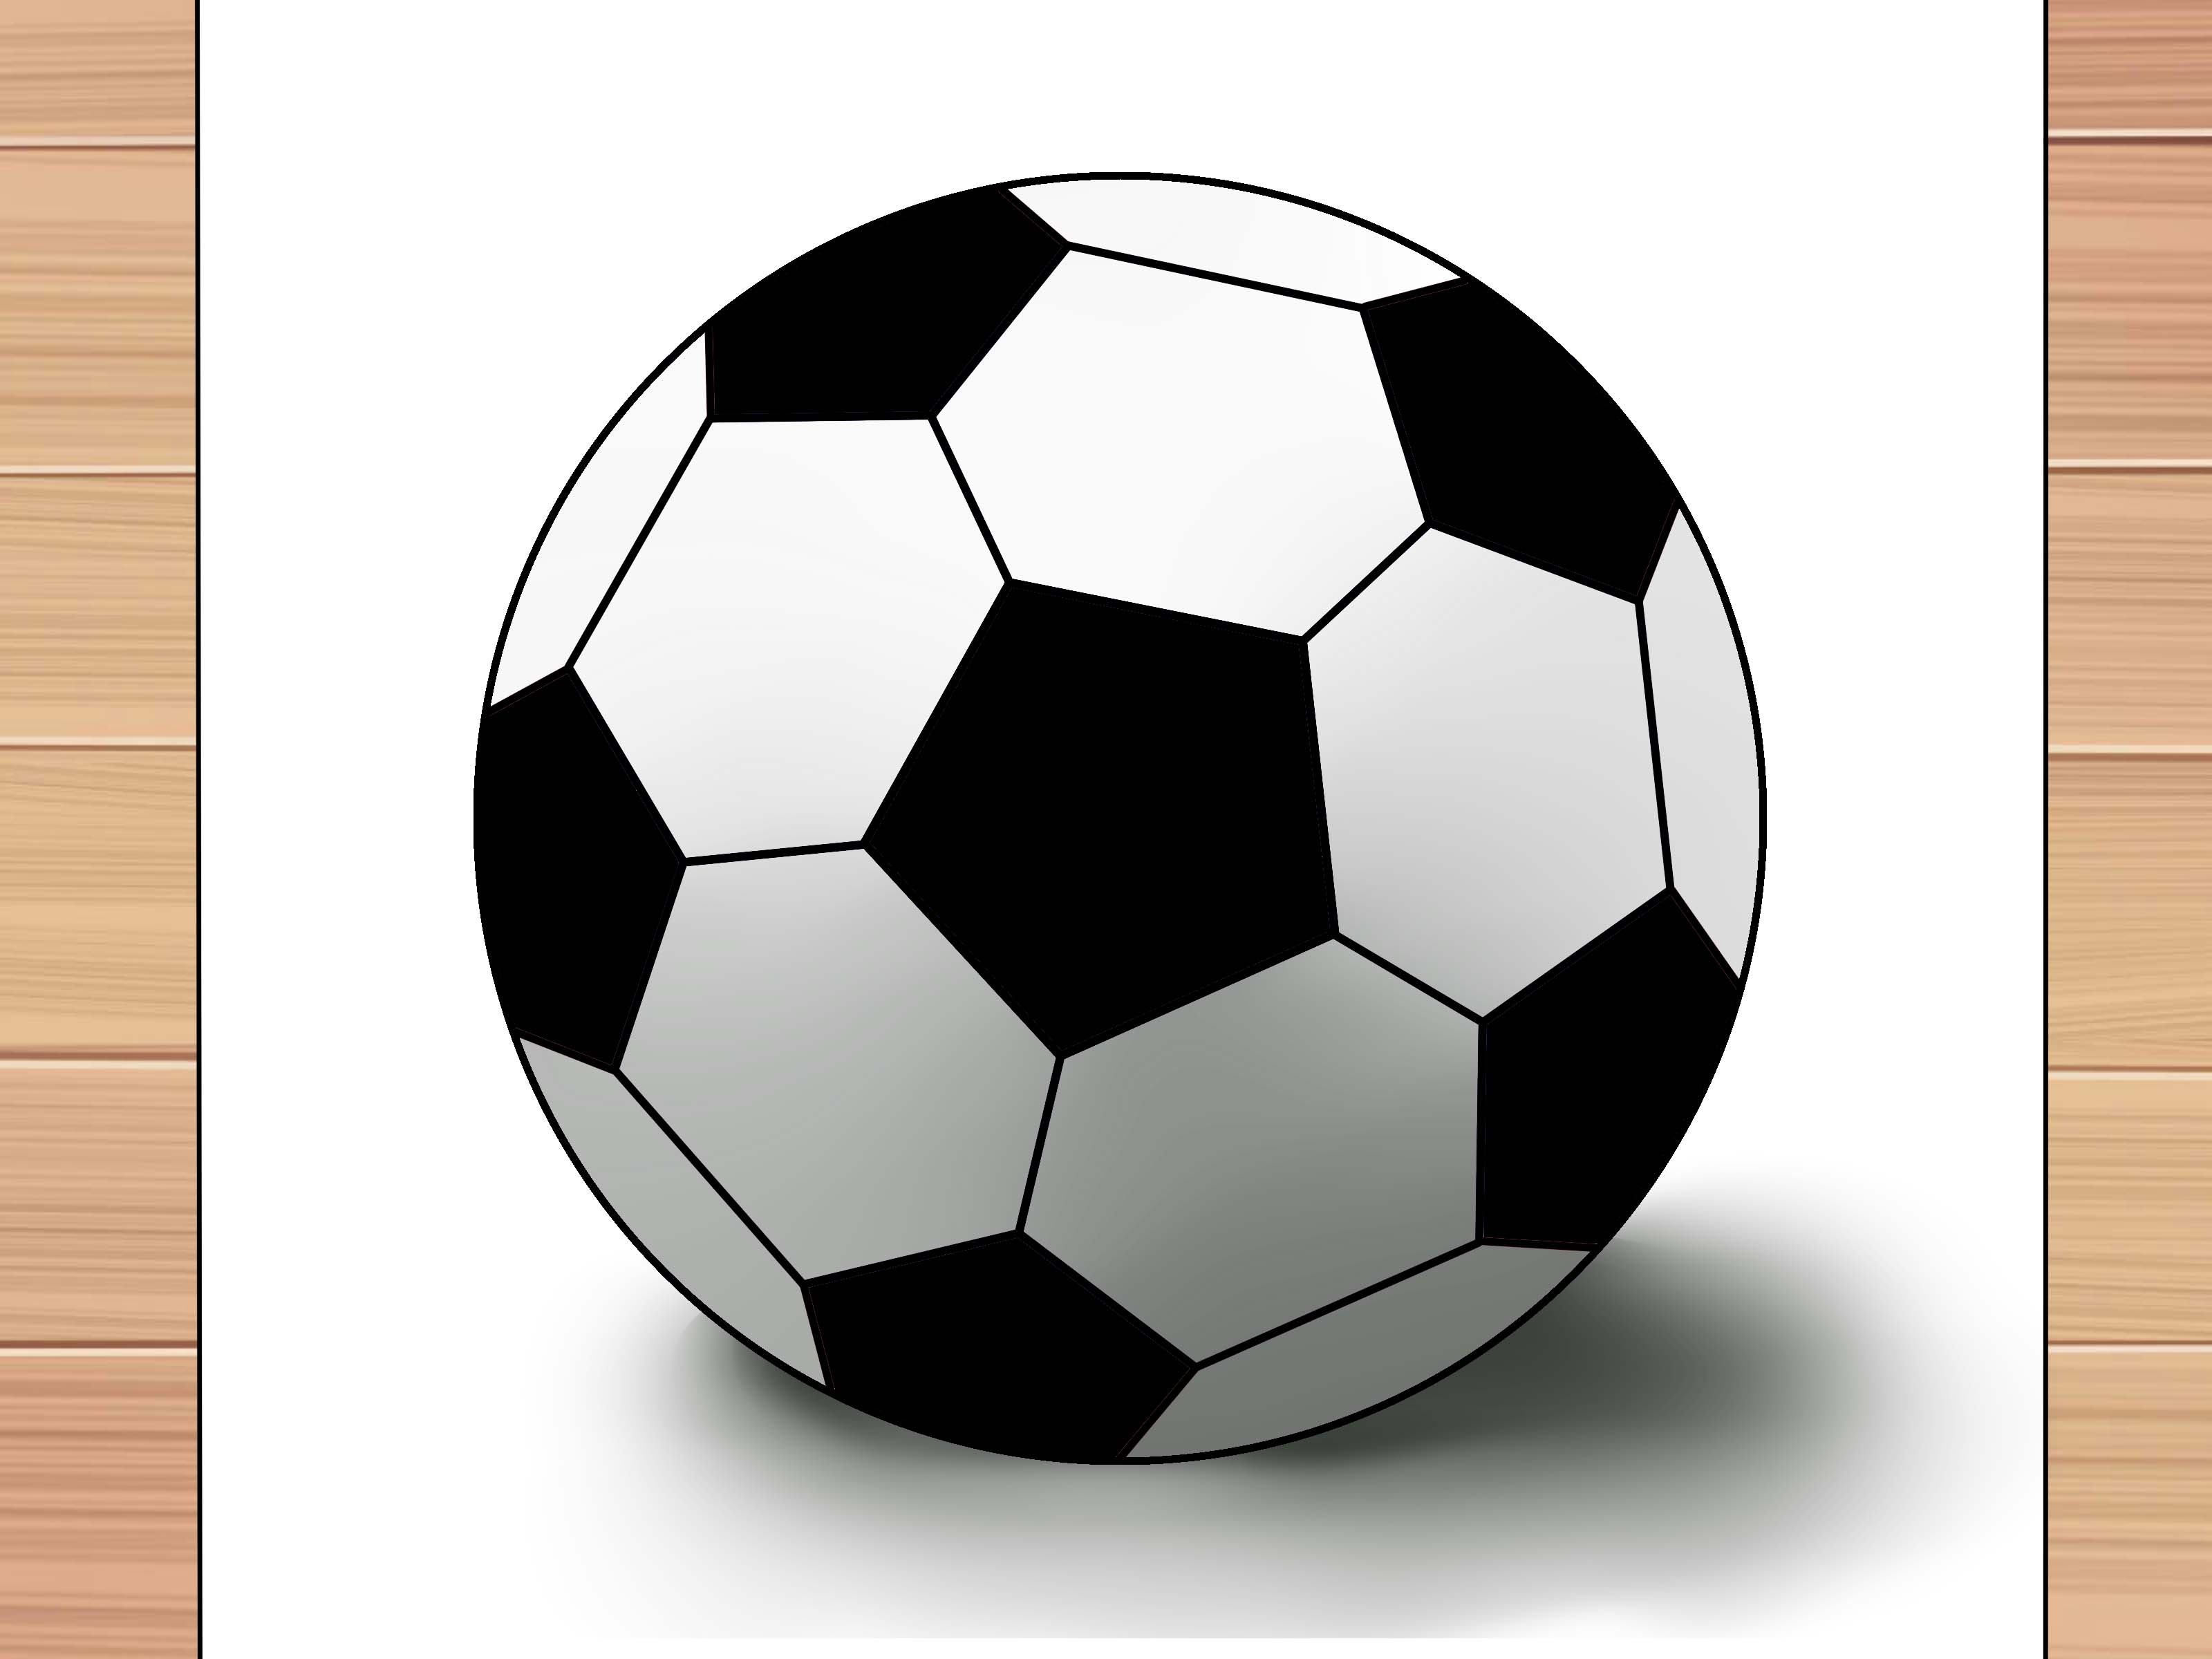 3200x2400 Easy Soccer Ball Drawing 3 Ways To Draw A Soccer Ball